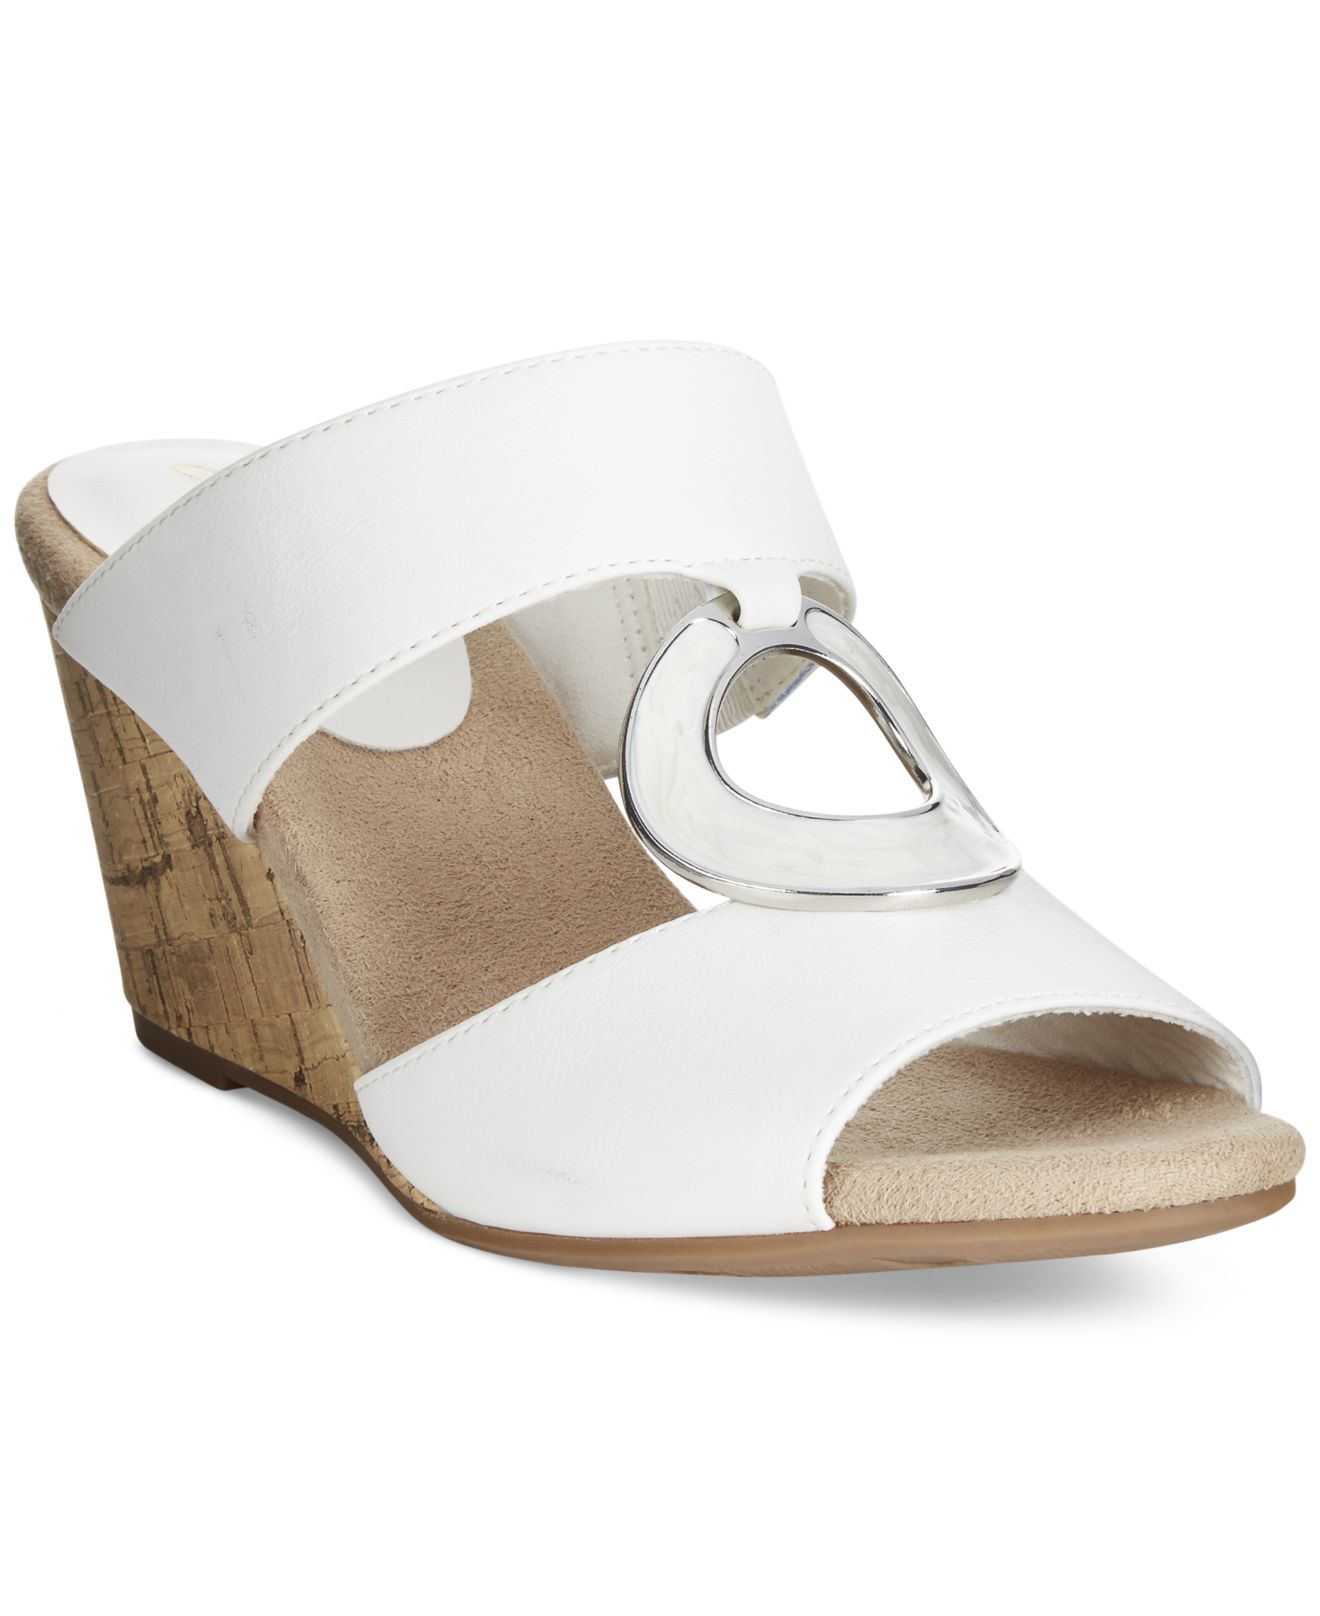 Easy Street Ever Mule Wedge Sandals In White Lyst